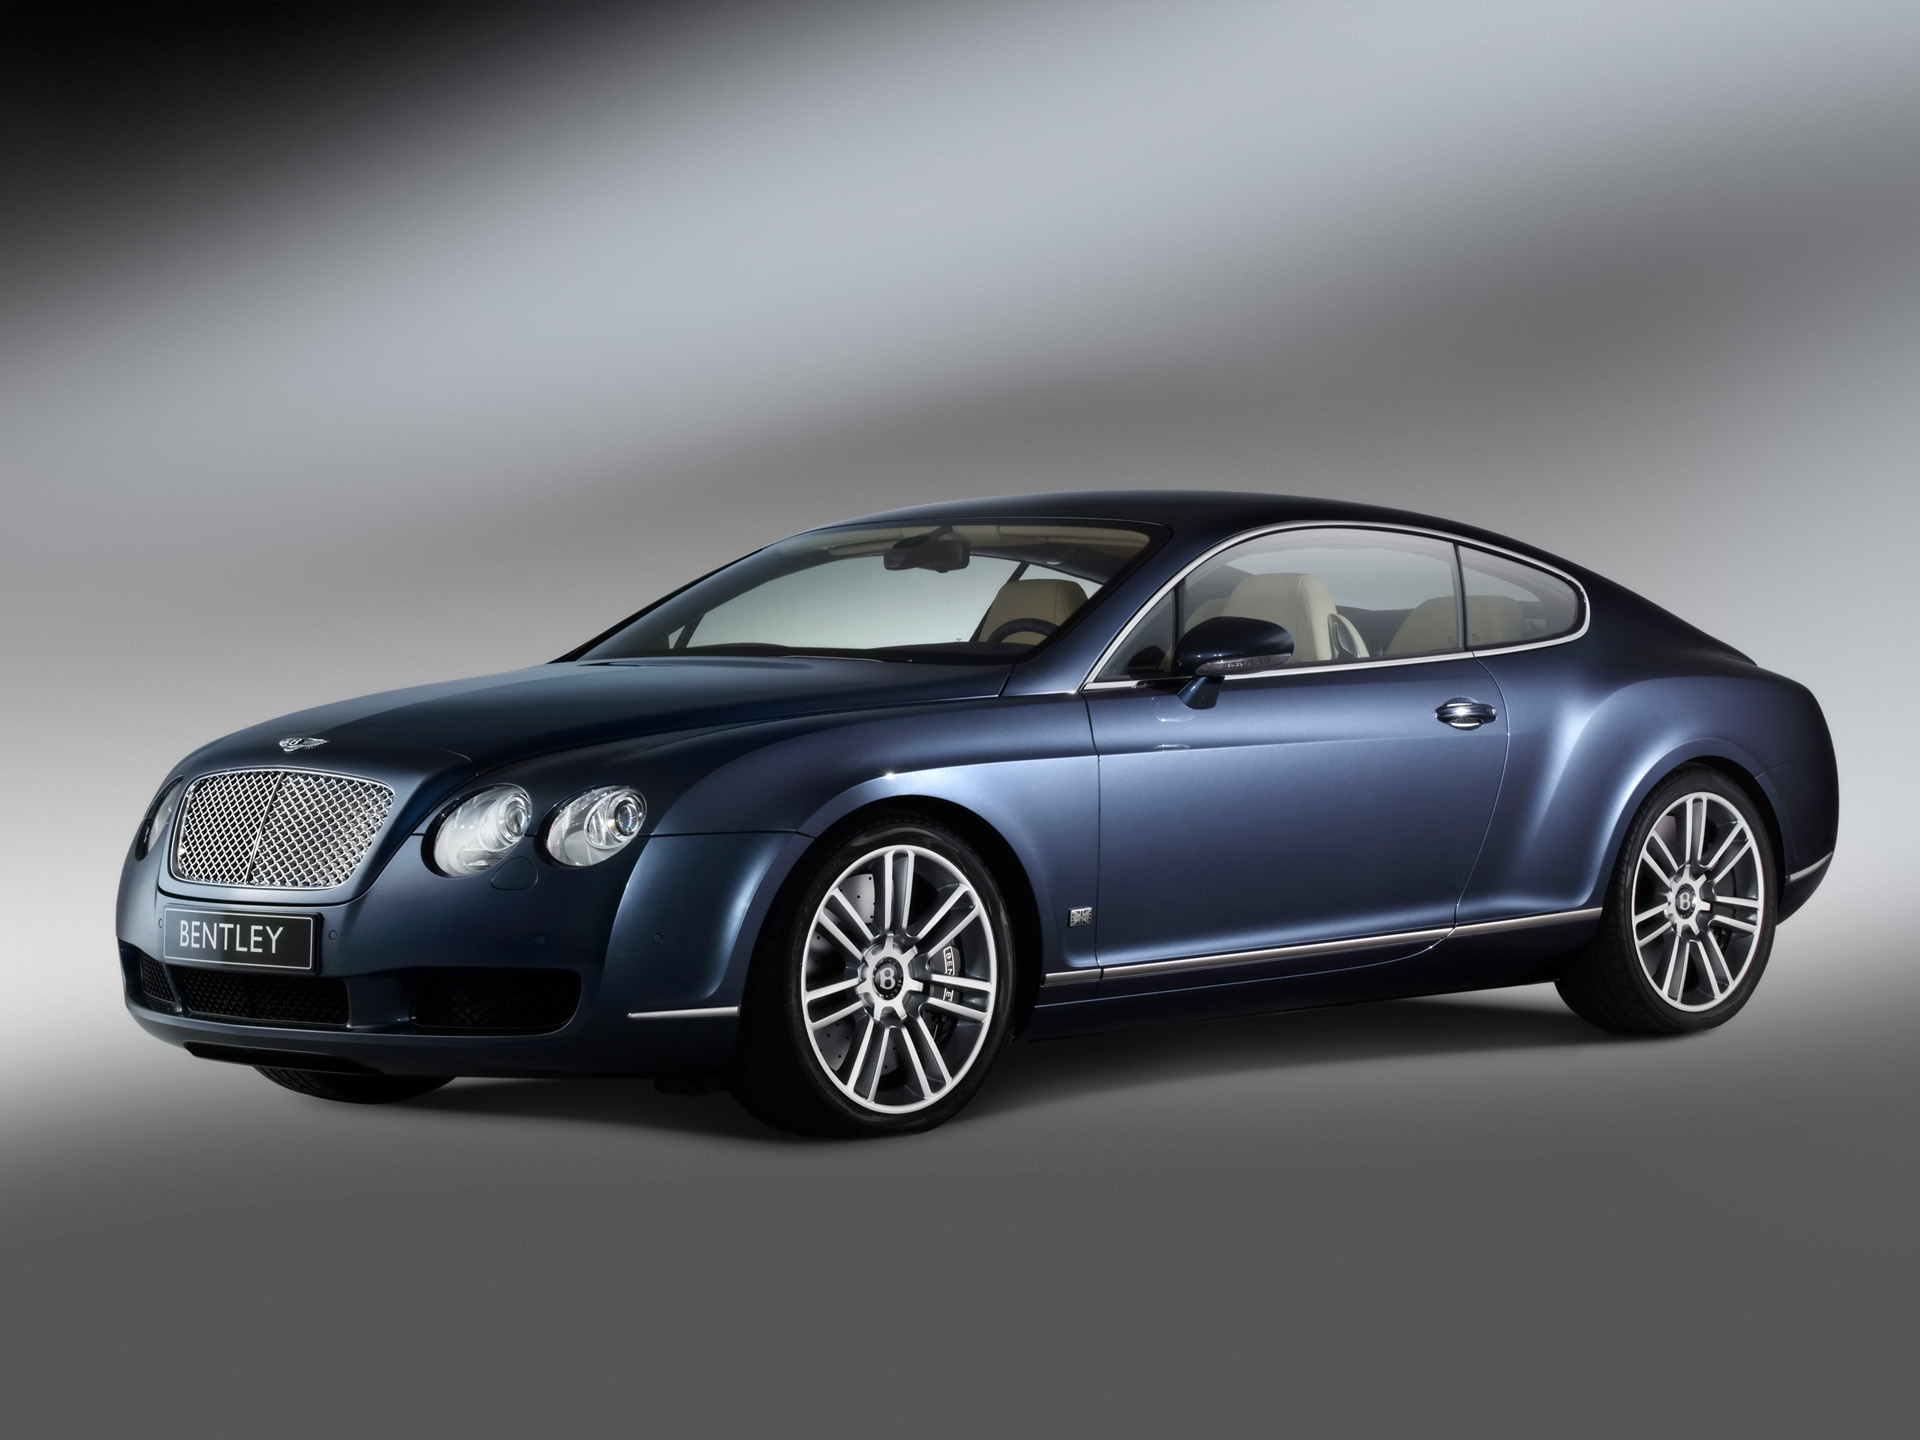 2006 bentley continental gt diamond series desktop wallpaper and high. Cars Review. Best American Auto & Cars Review